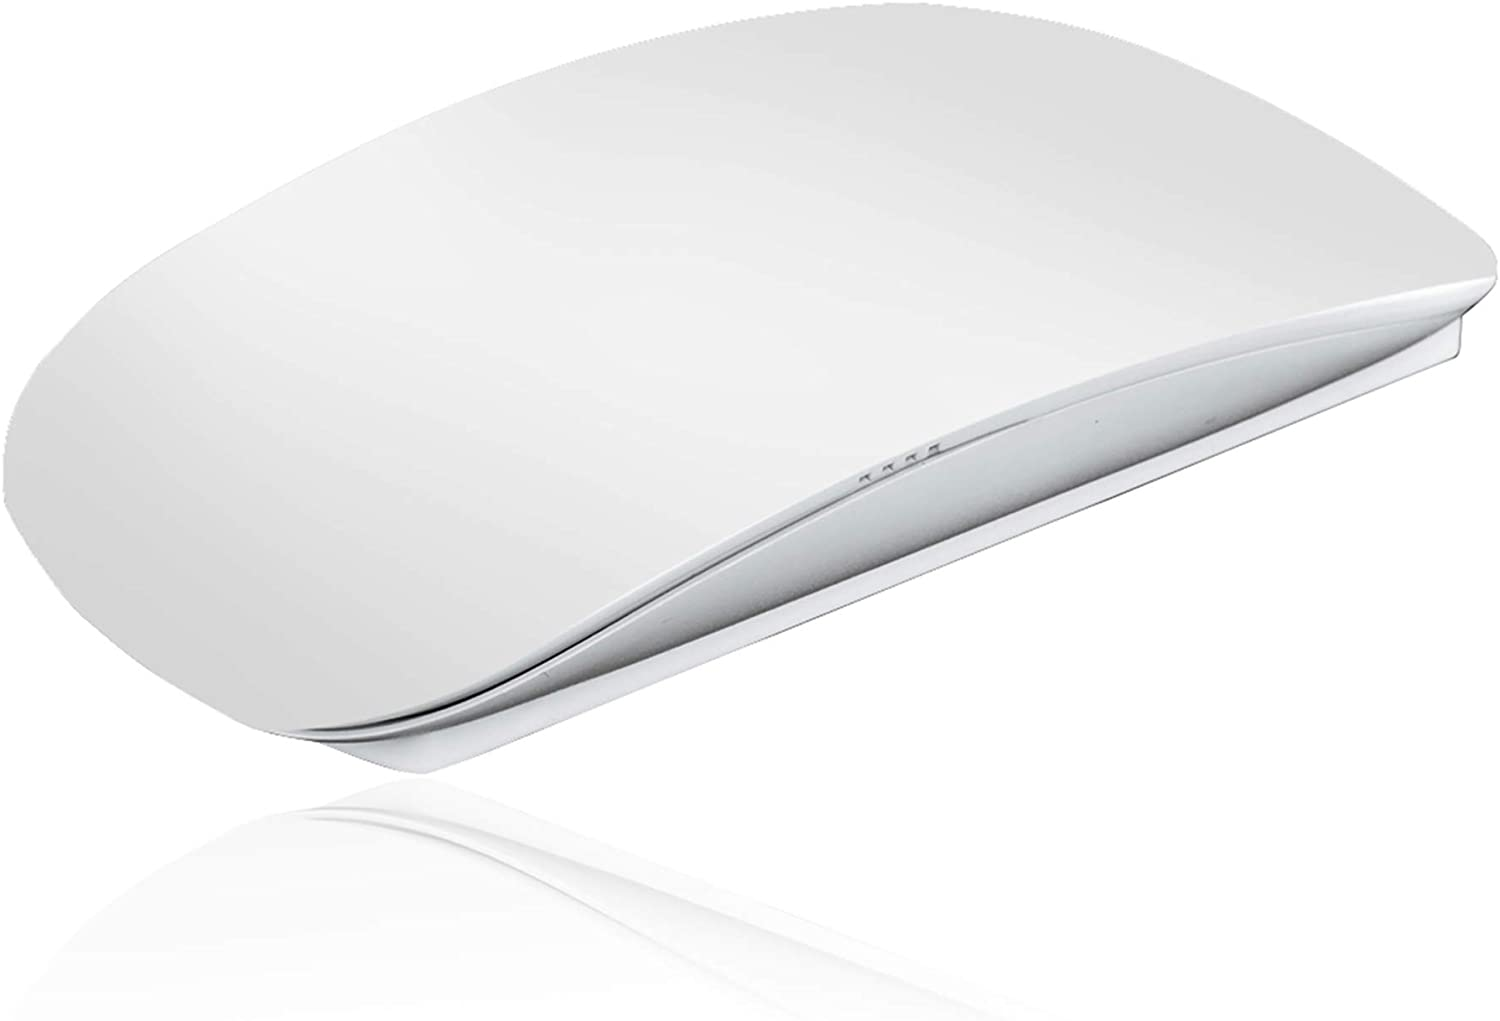 ACZH Touch Magic Wireless Mouse Travel Ultra-Thin Portable Mini Mice Compatible with PC,MAC,Laptops (White)